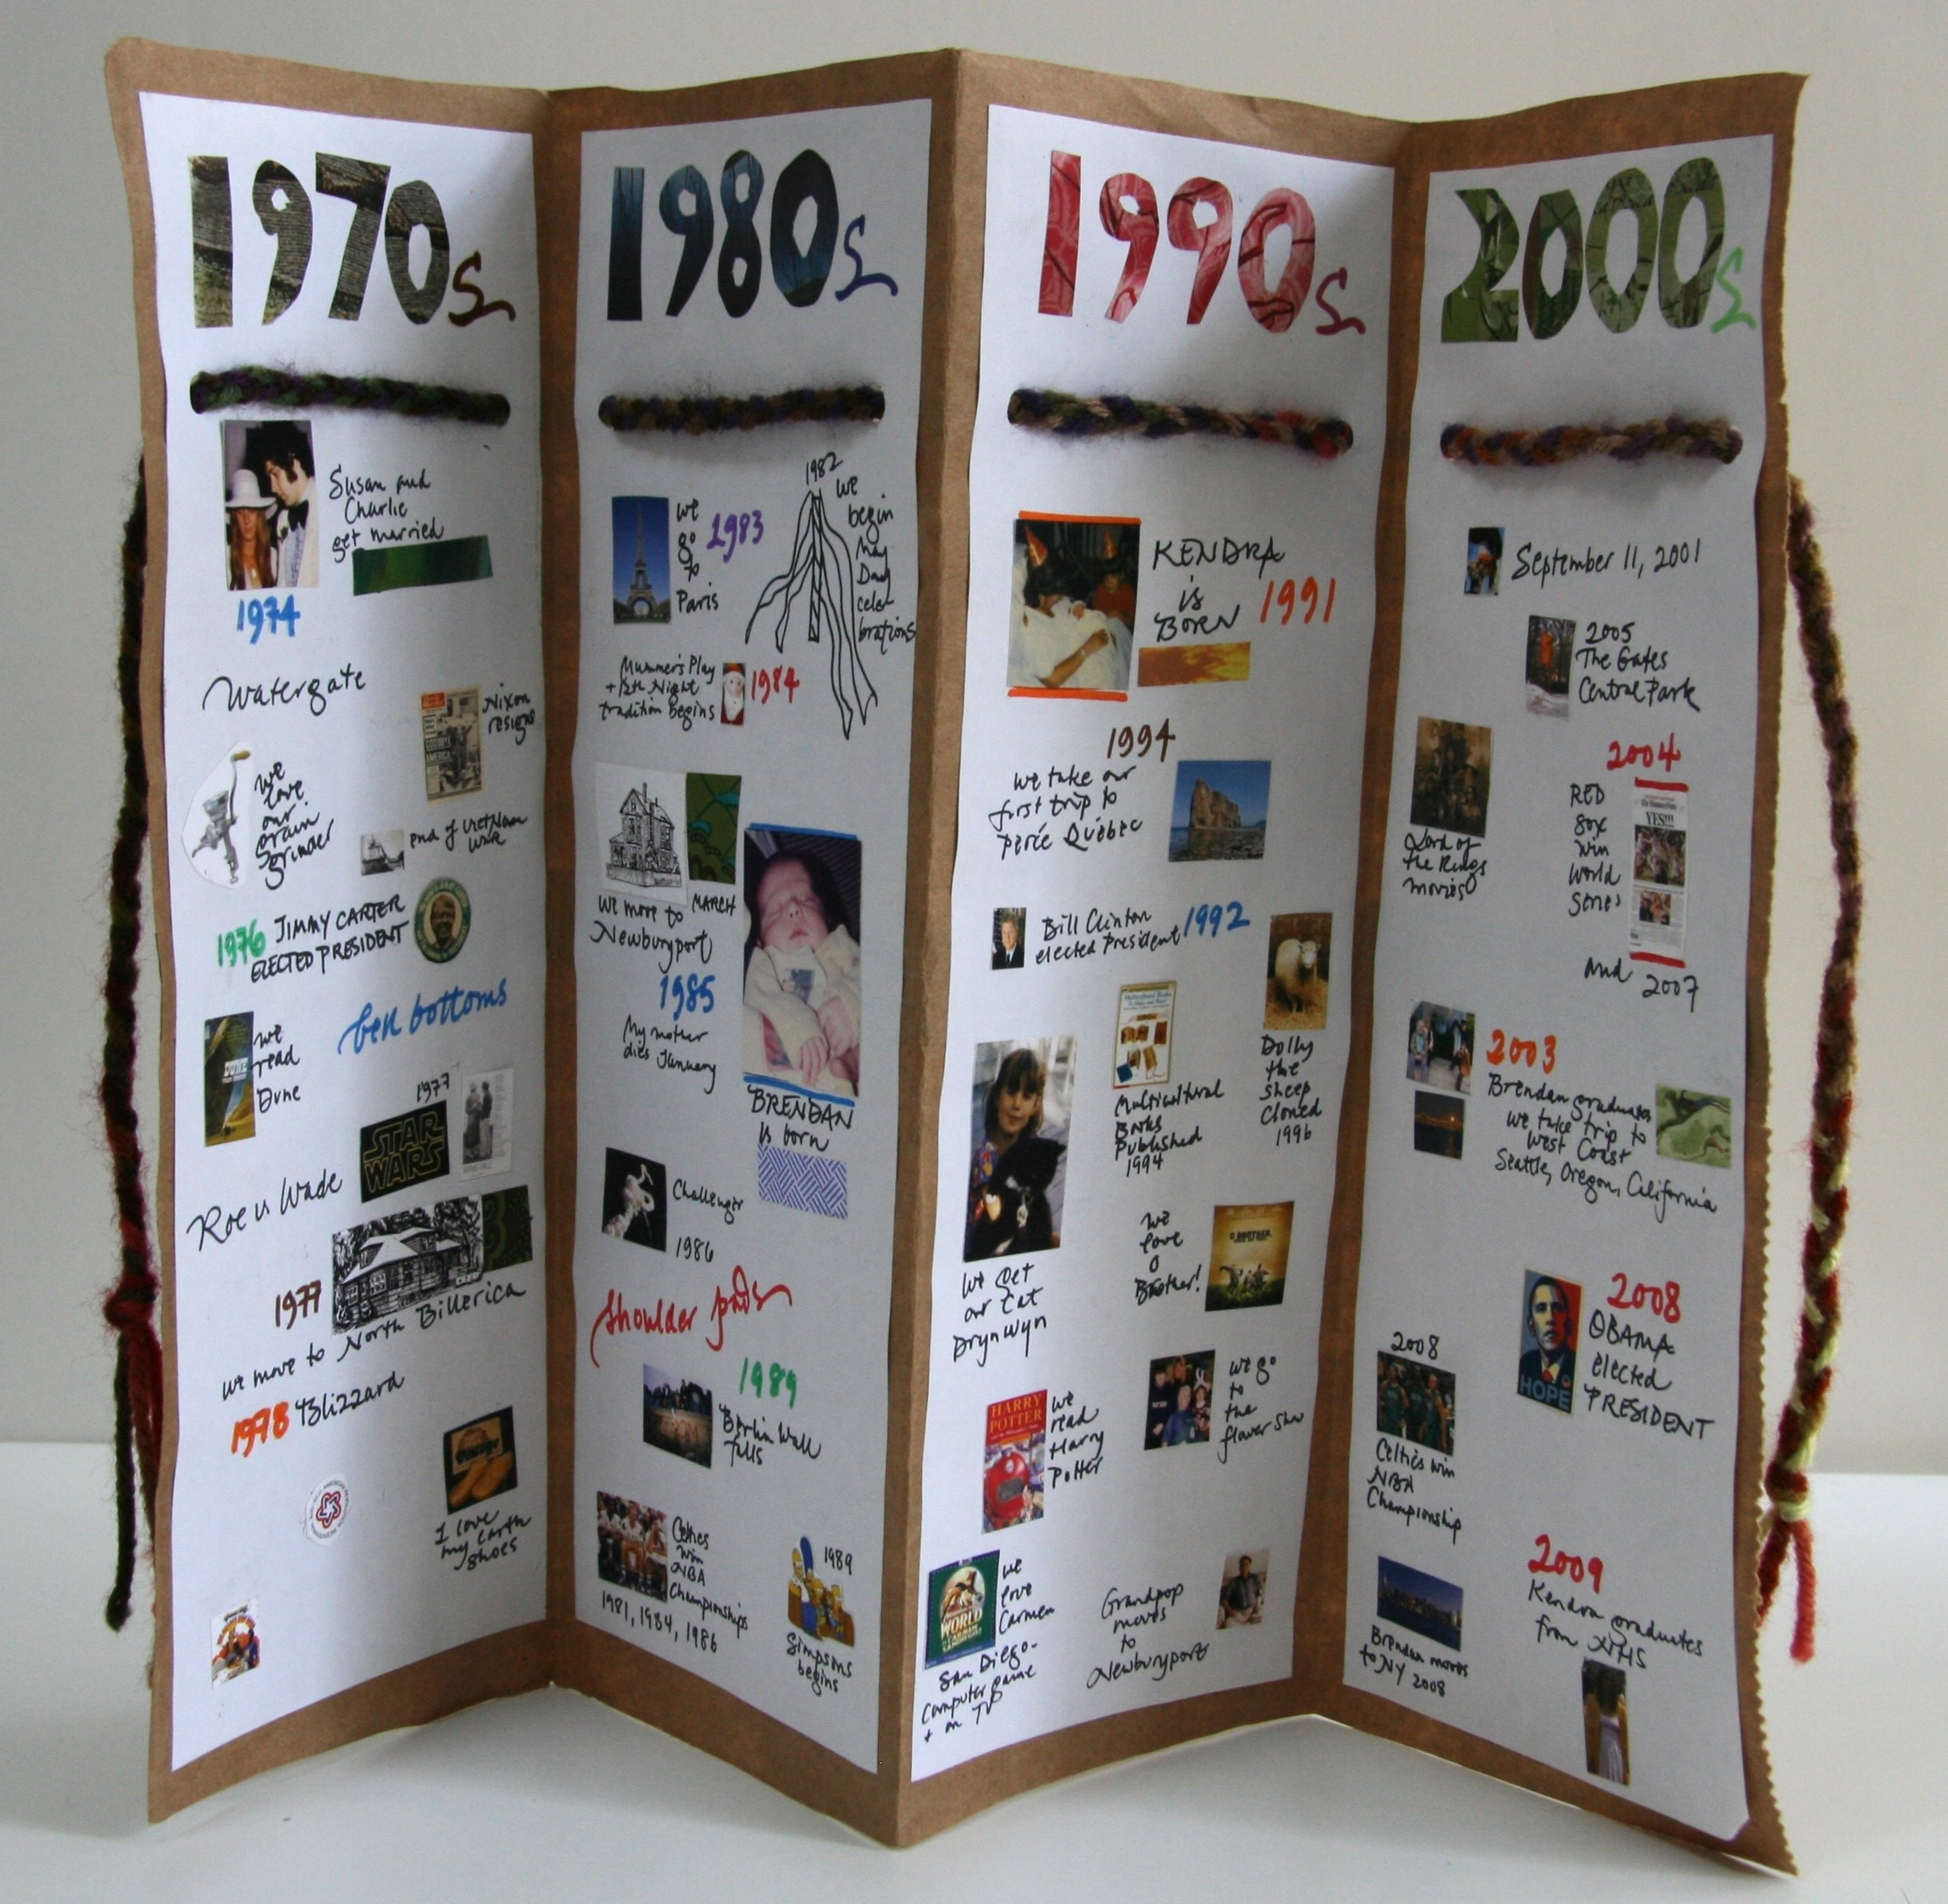 10 Unique History Project Ideas For Middle School pinelaina nelson on classroom pinterest extended family